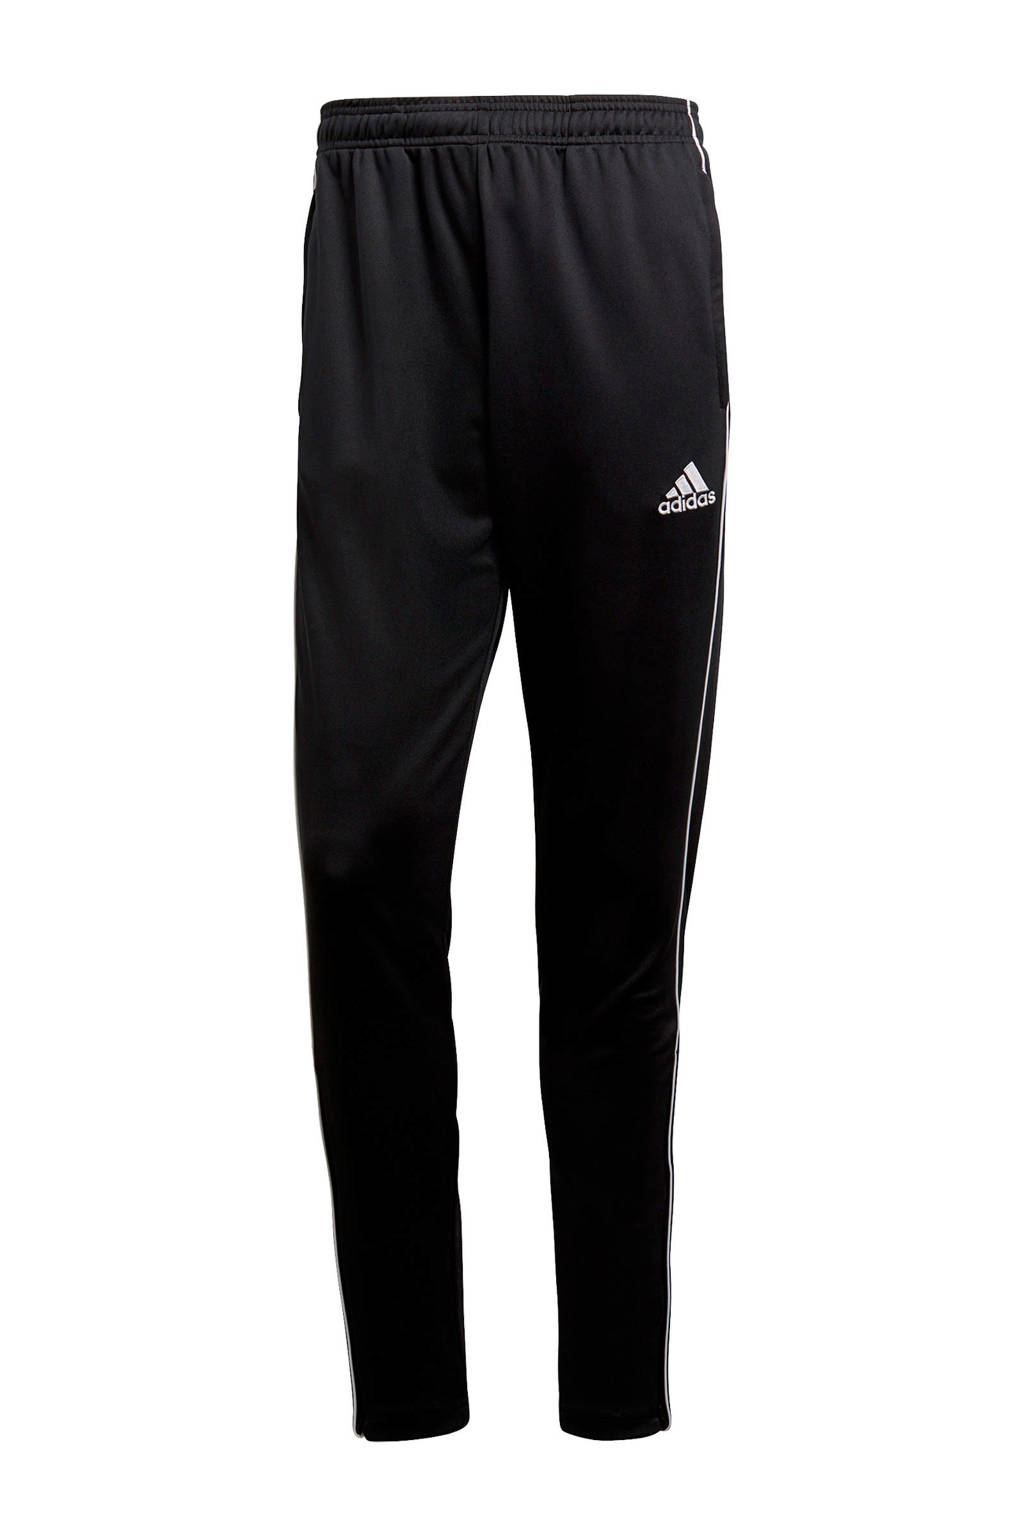 adidas performance Senior  sportbroek CORE18 zwart, Zwart, Heren